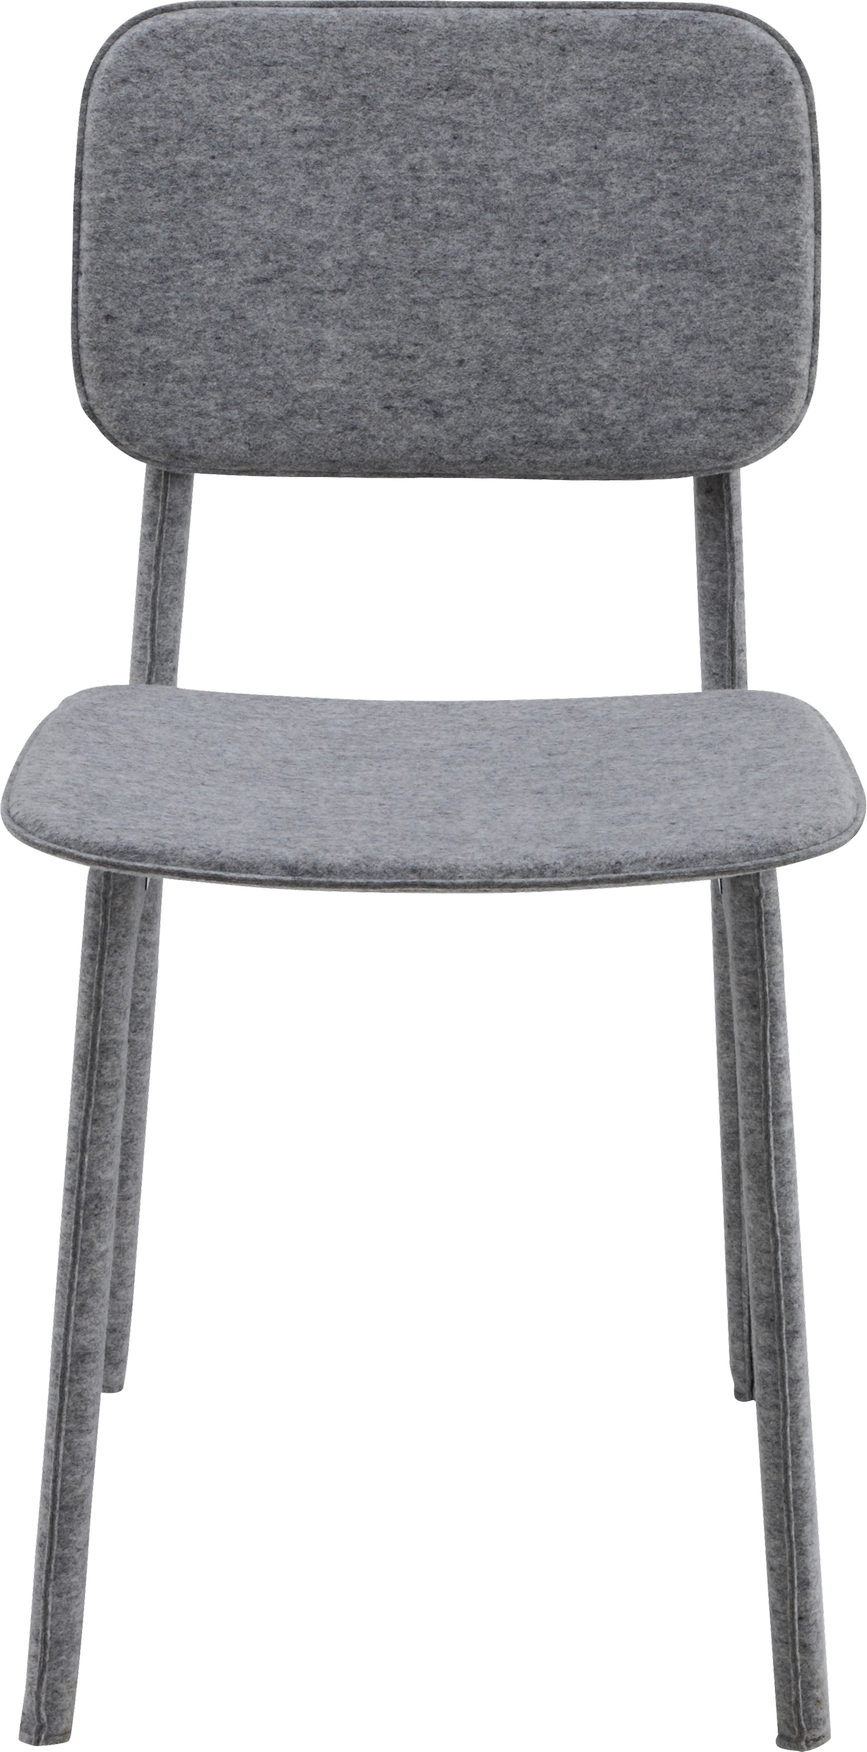 Chair Png Image Best Outdoor Furniture Outdoor Furniture Furniture